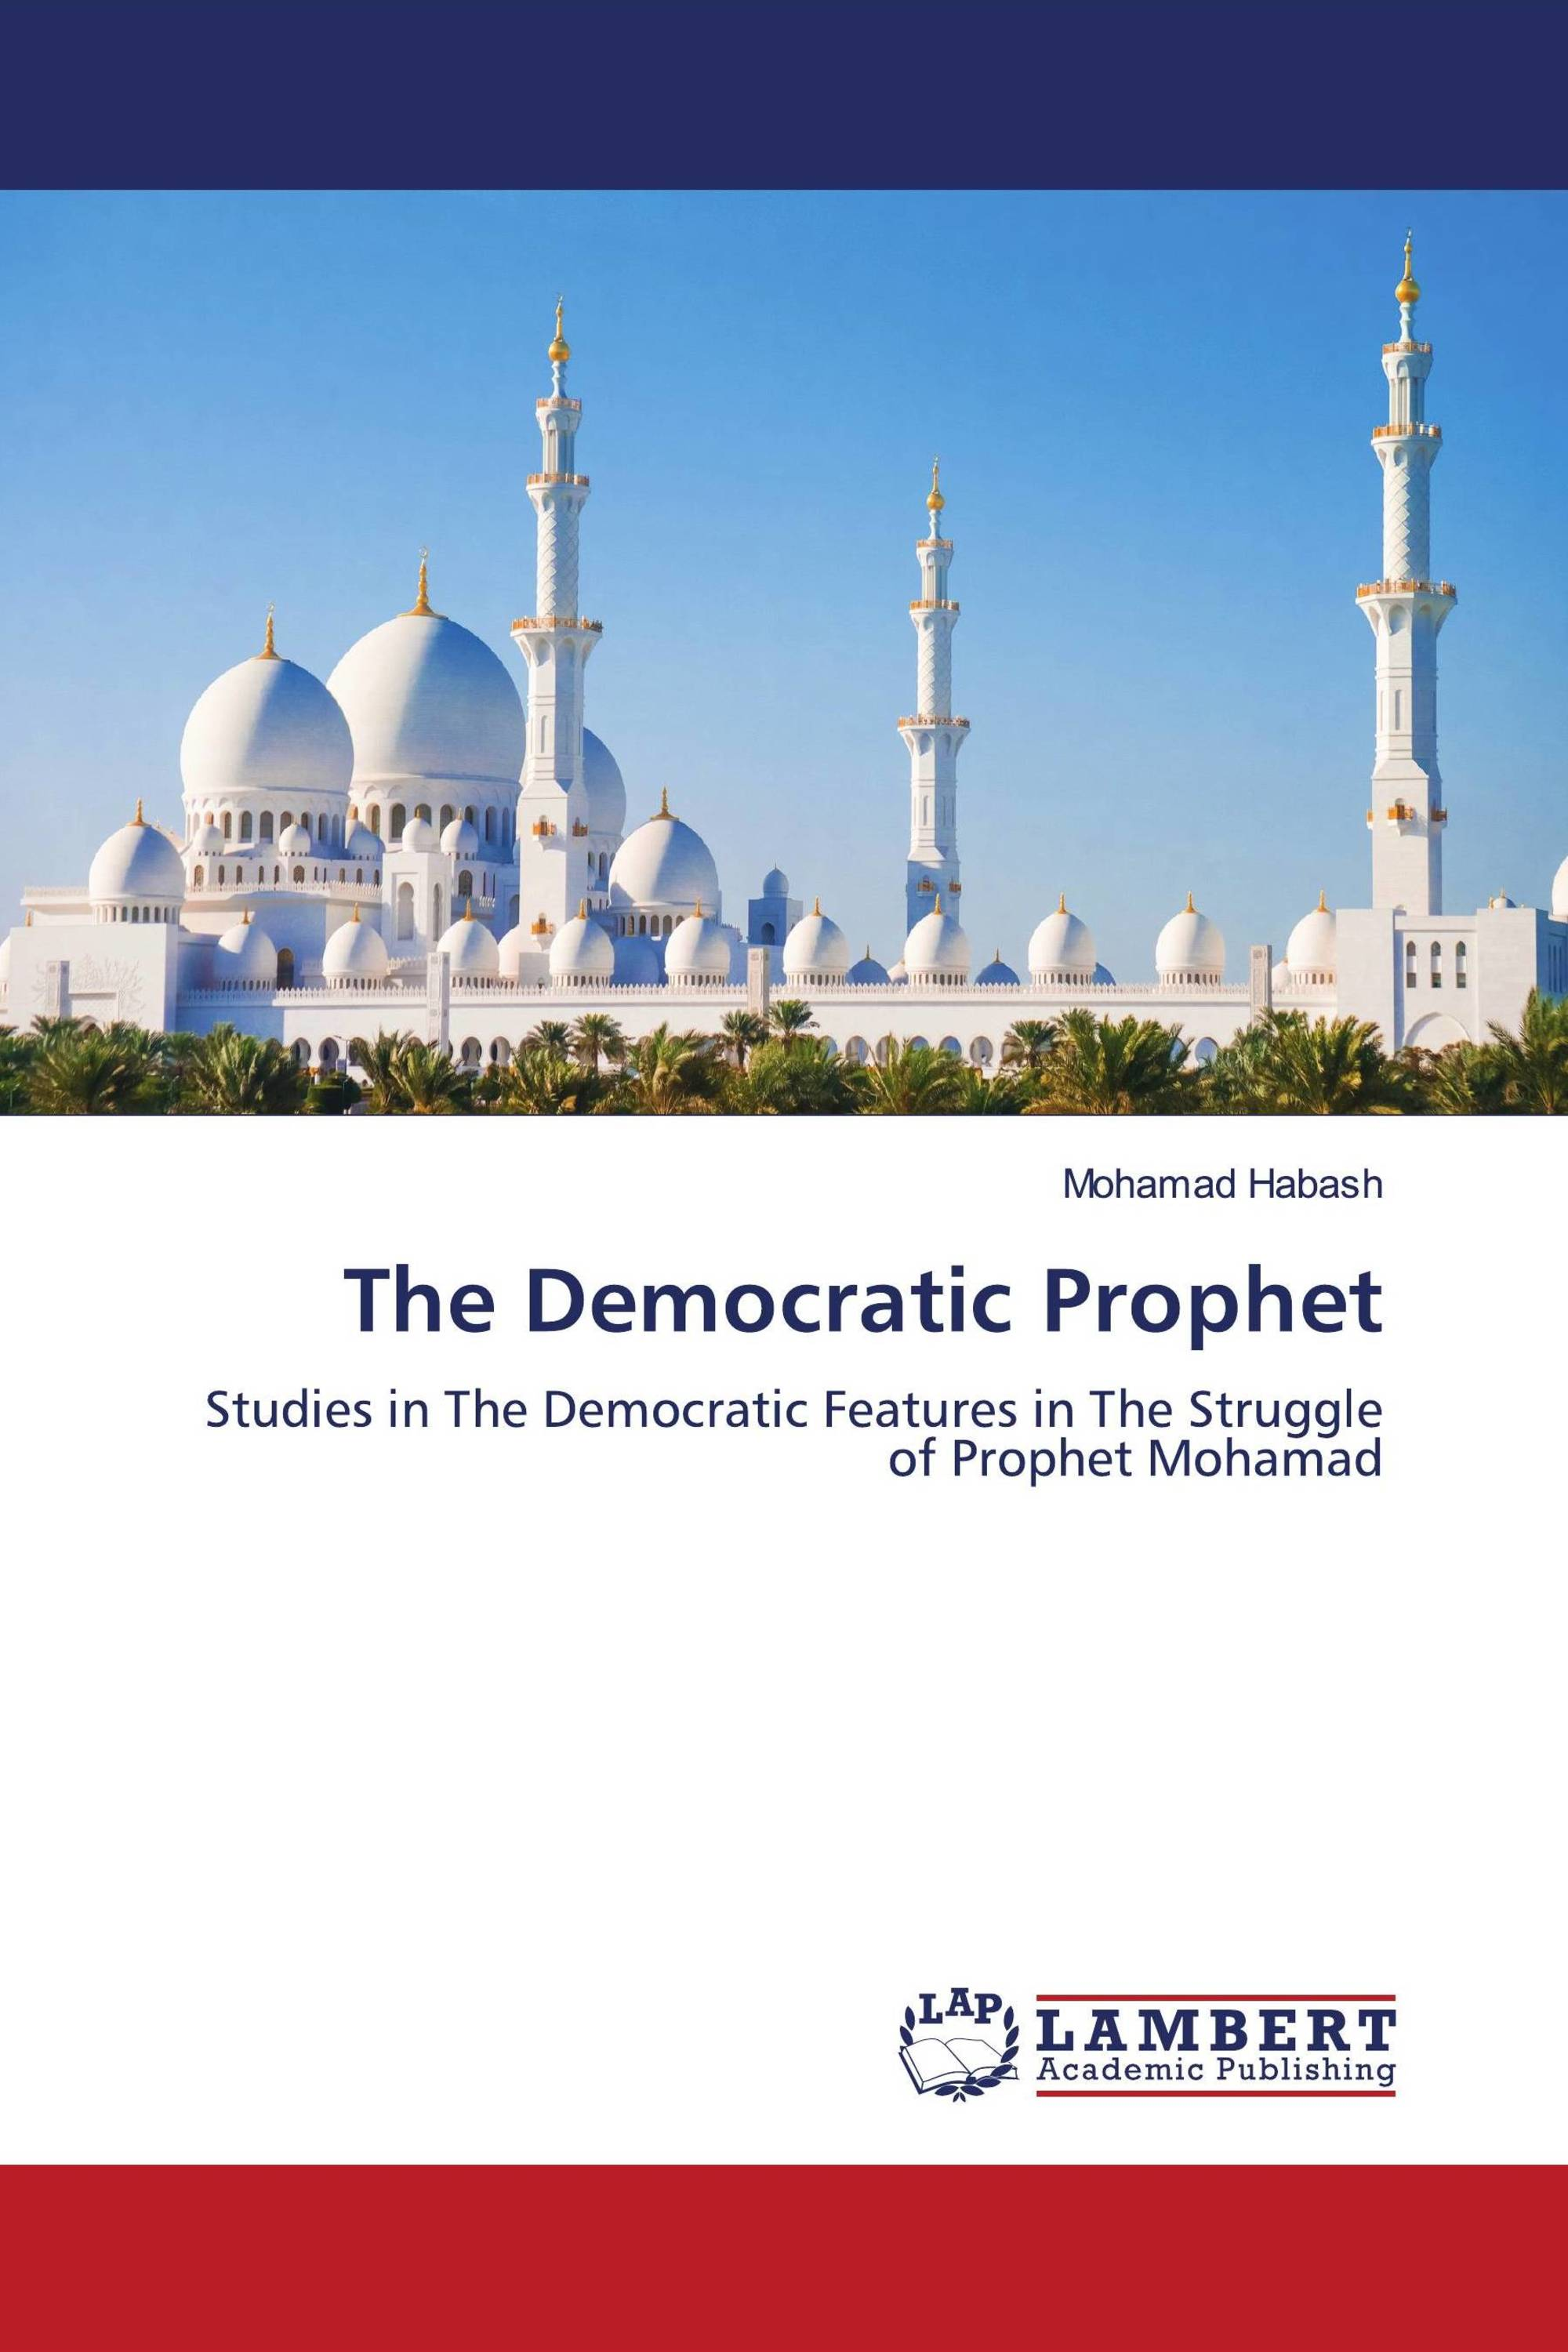 The Democratic Prophet